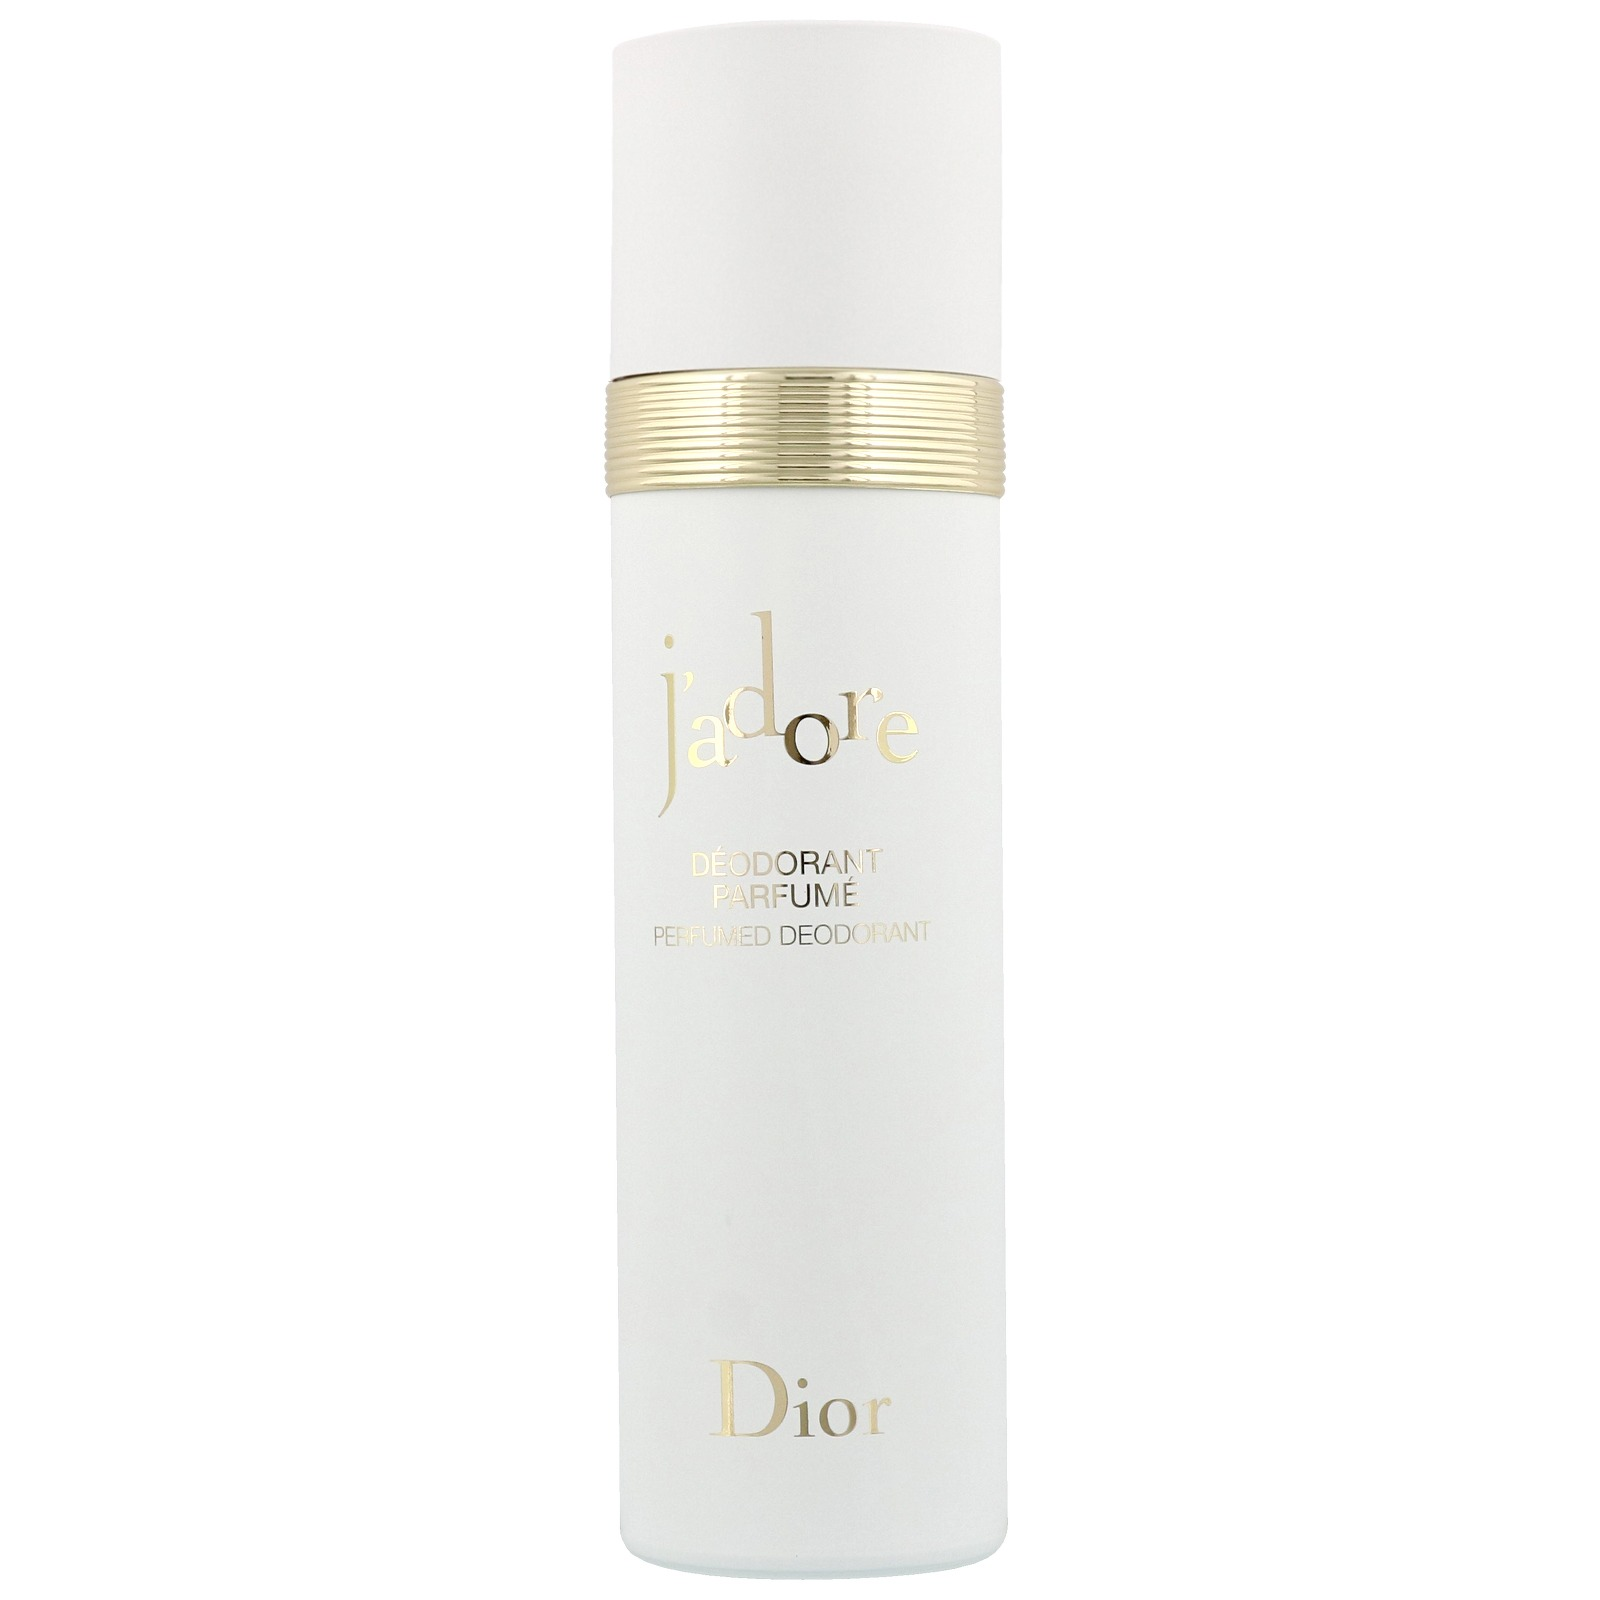 J'adore Perfumed Deodorant Spray by Dior, one of the best French designer deodorants.